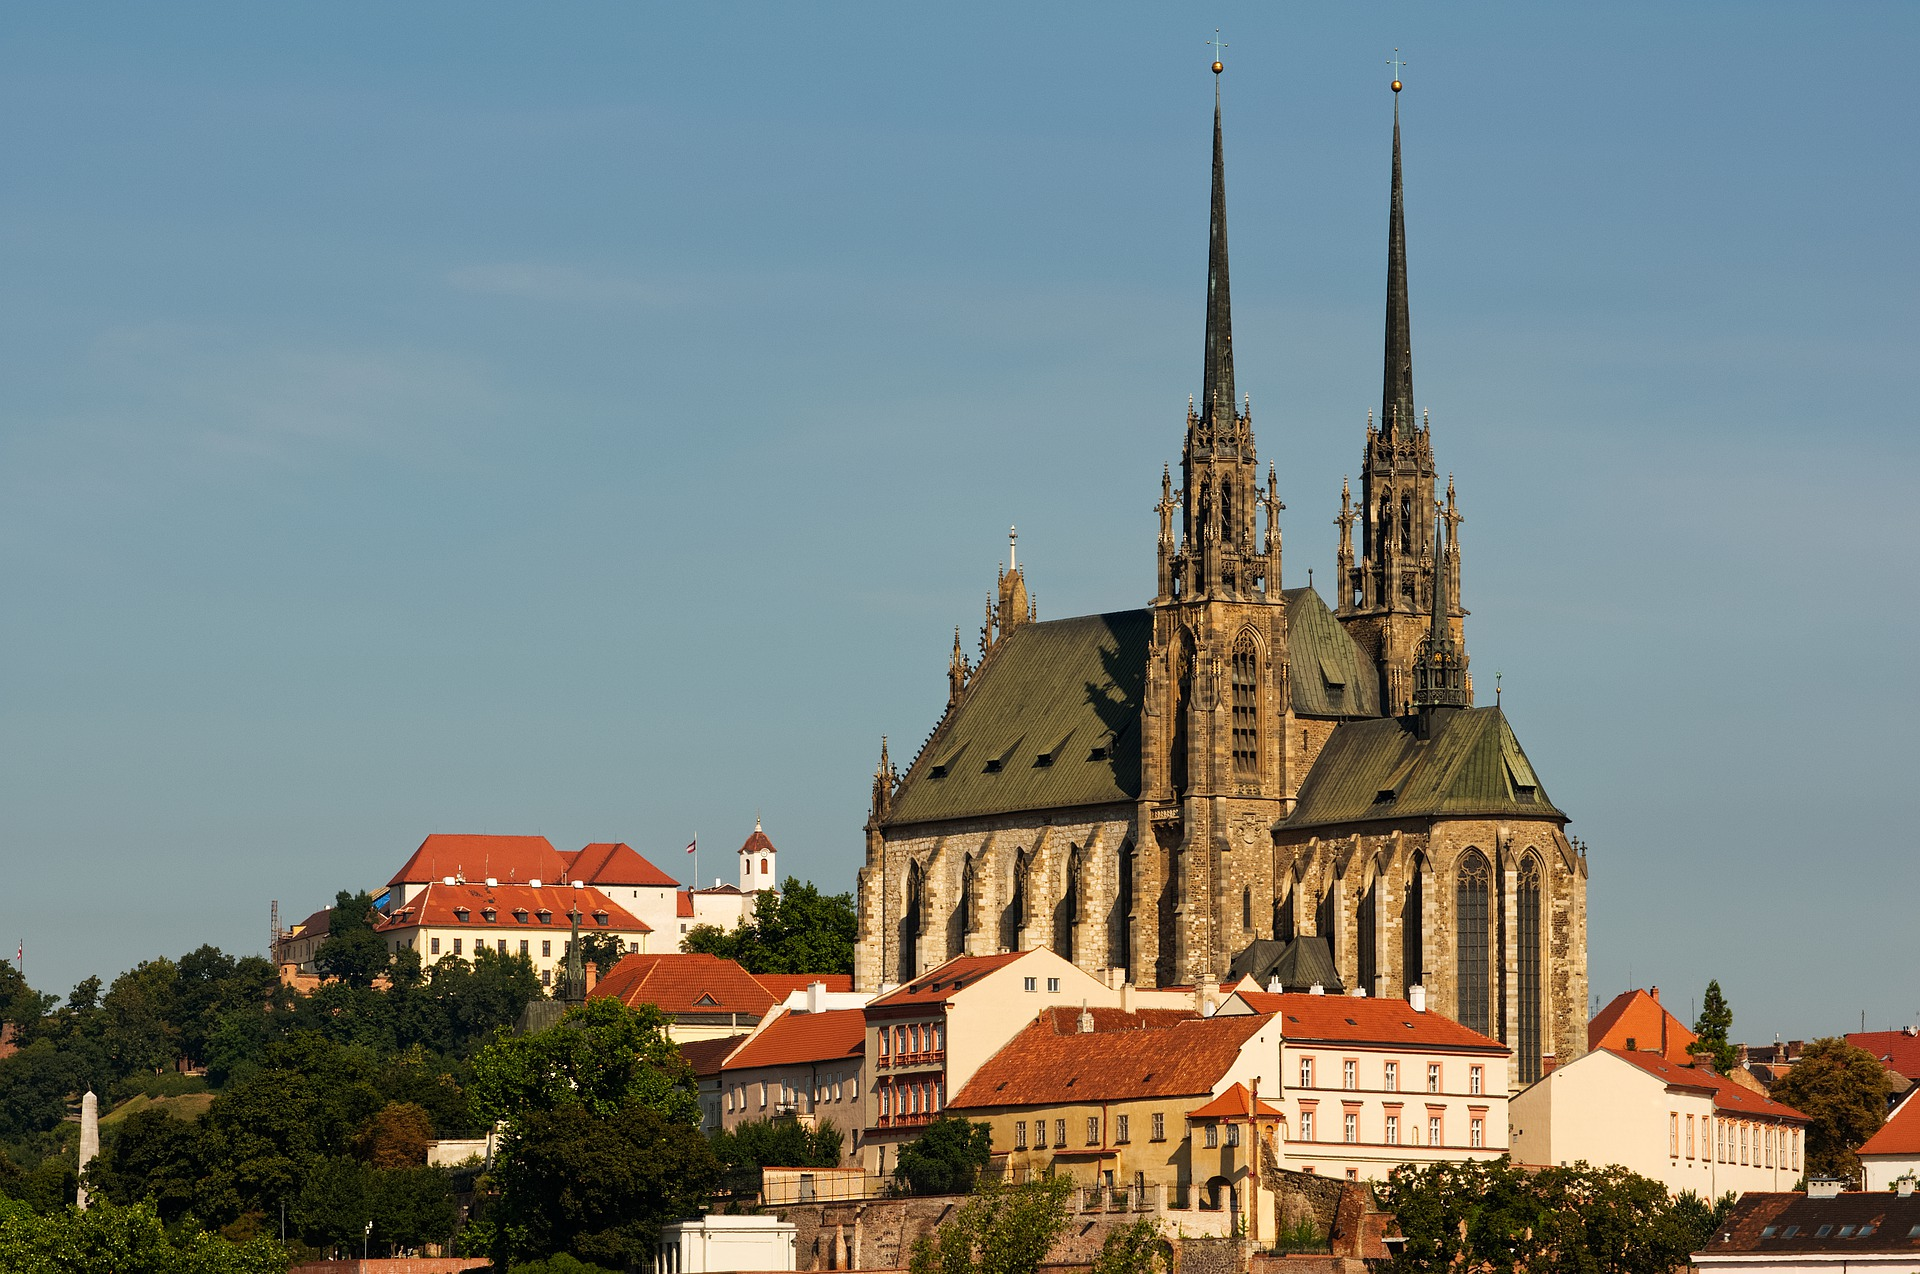 Cathedral of Sts Peter & Paul in Brno